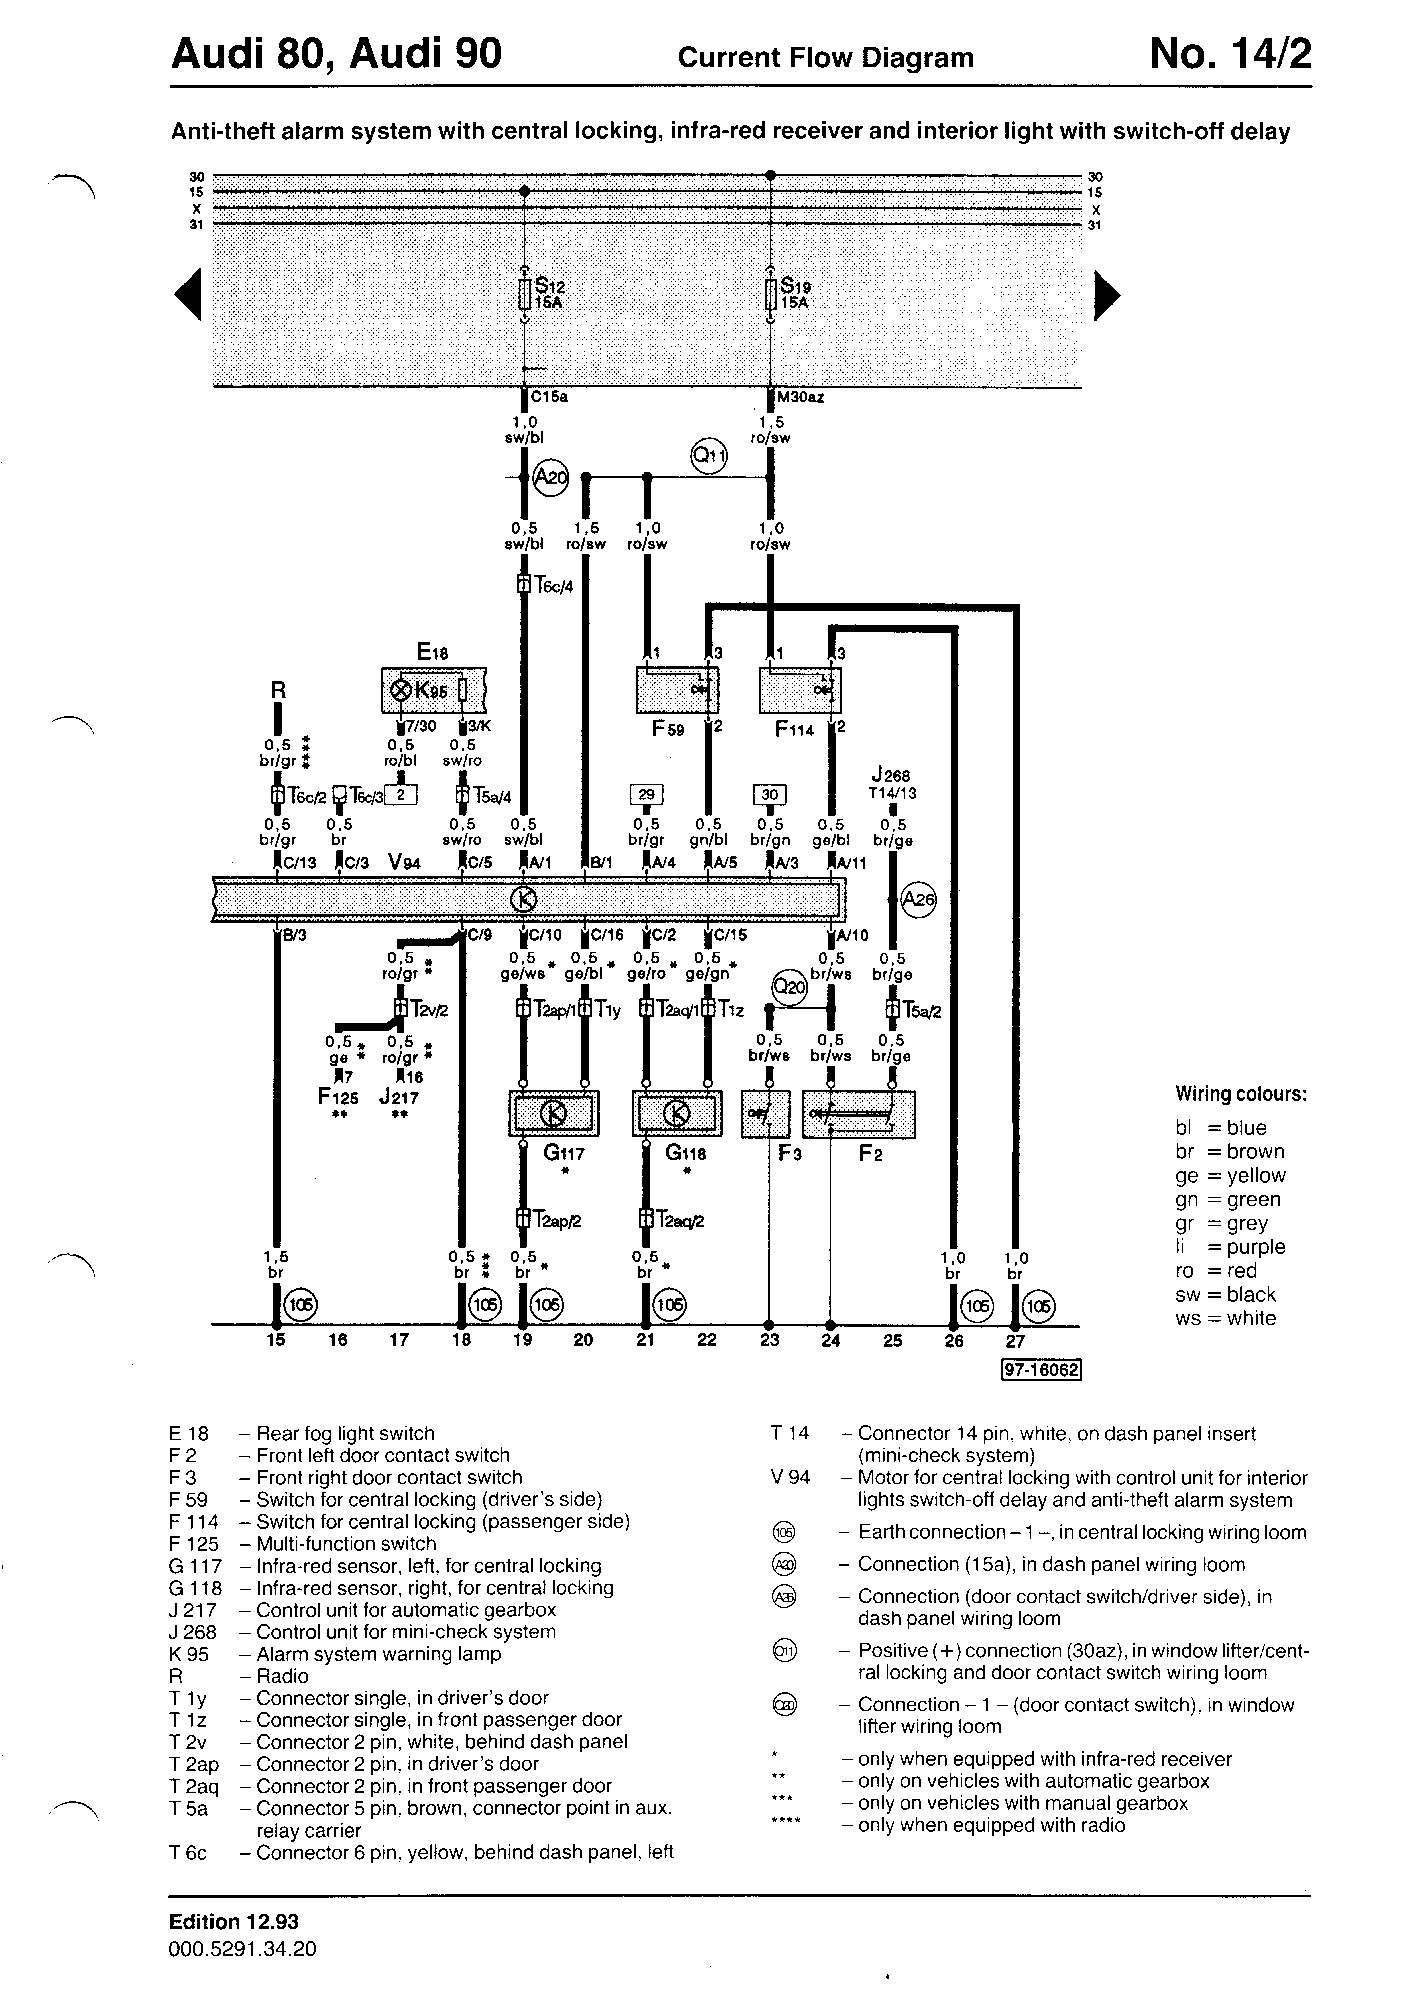 wiring diagrams component lookup rh s2 audi co uk audi s2 3b wiring diagram